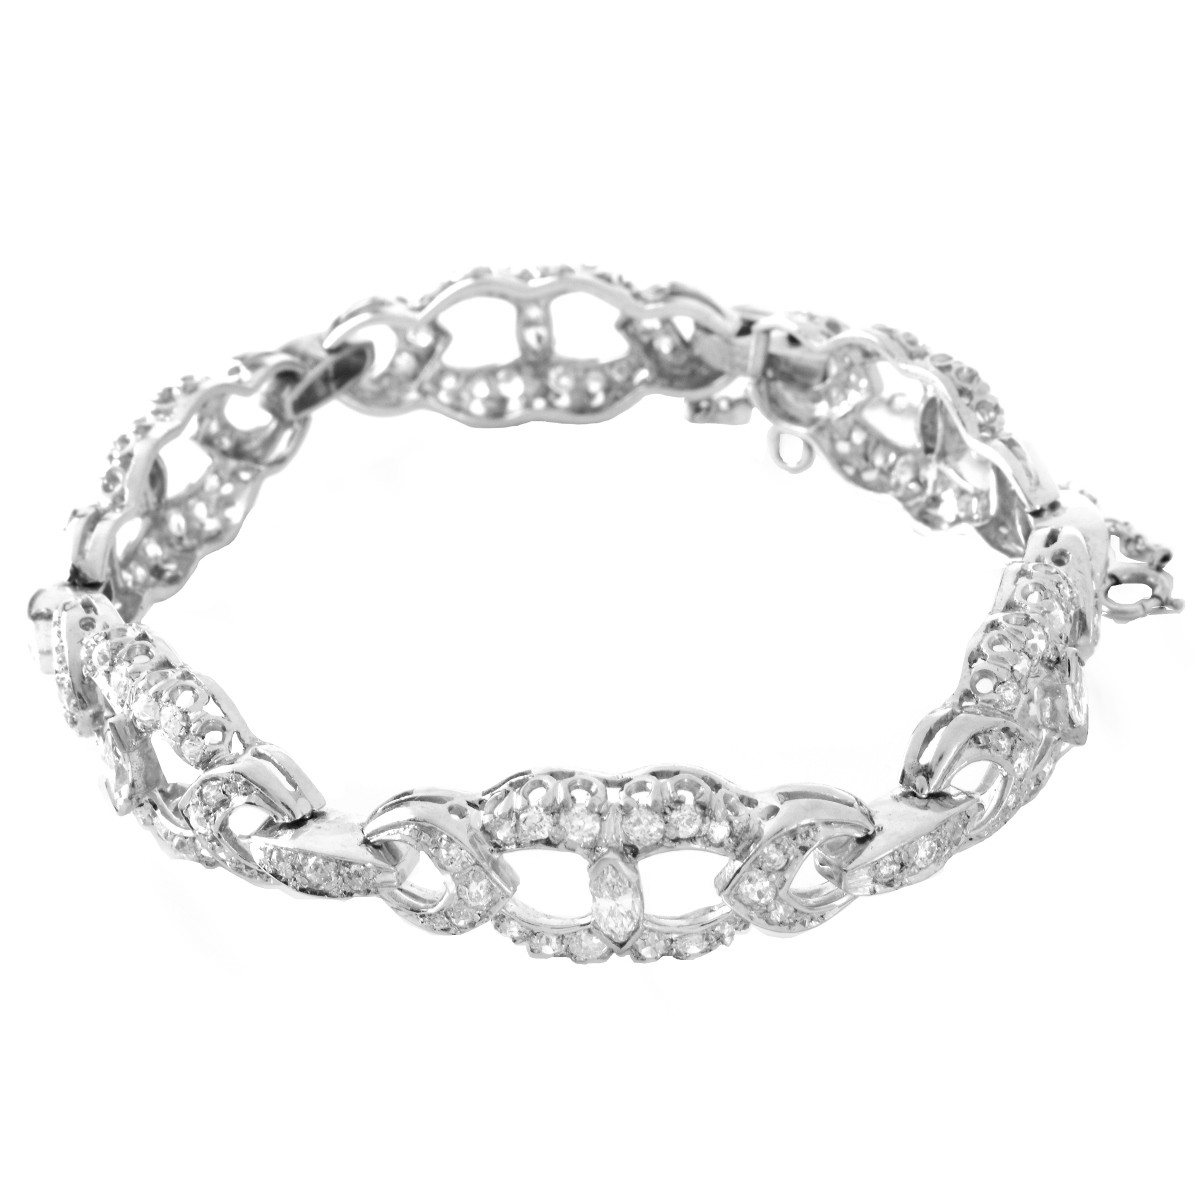 Antique Diamond and Platinum Bracelet